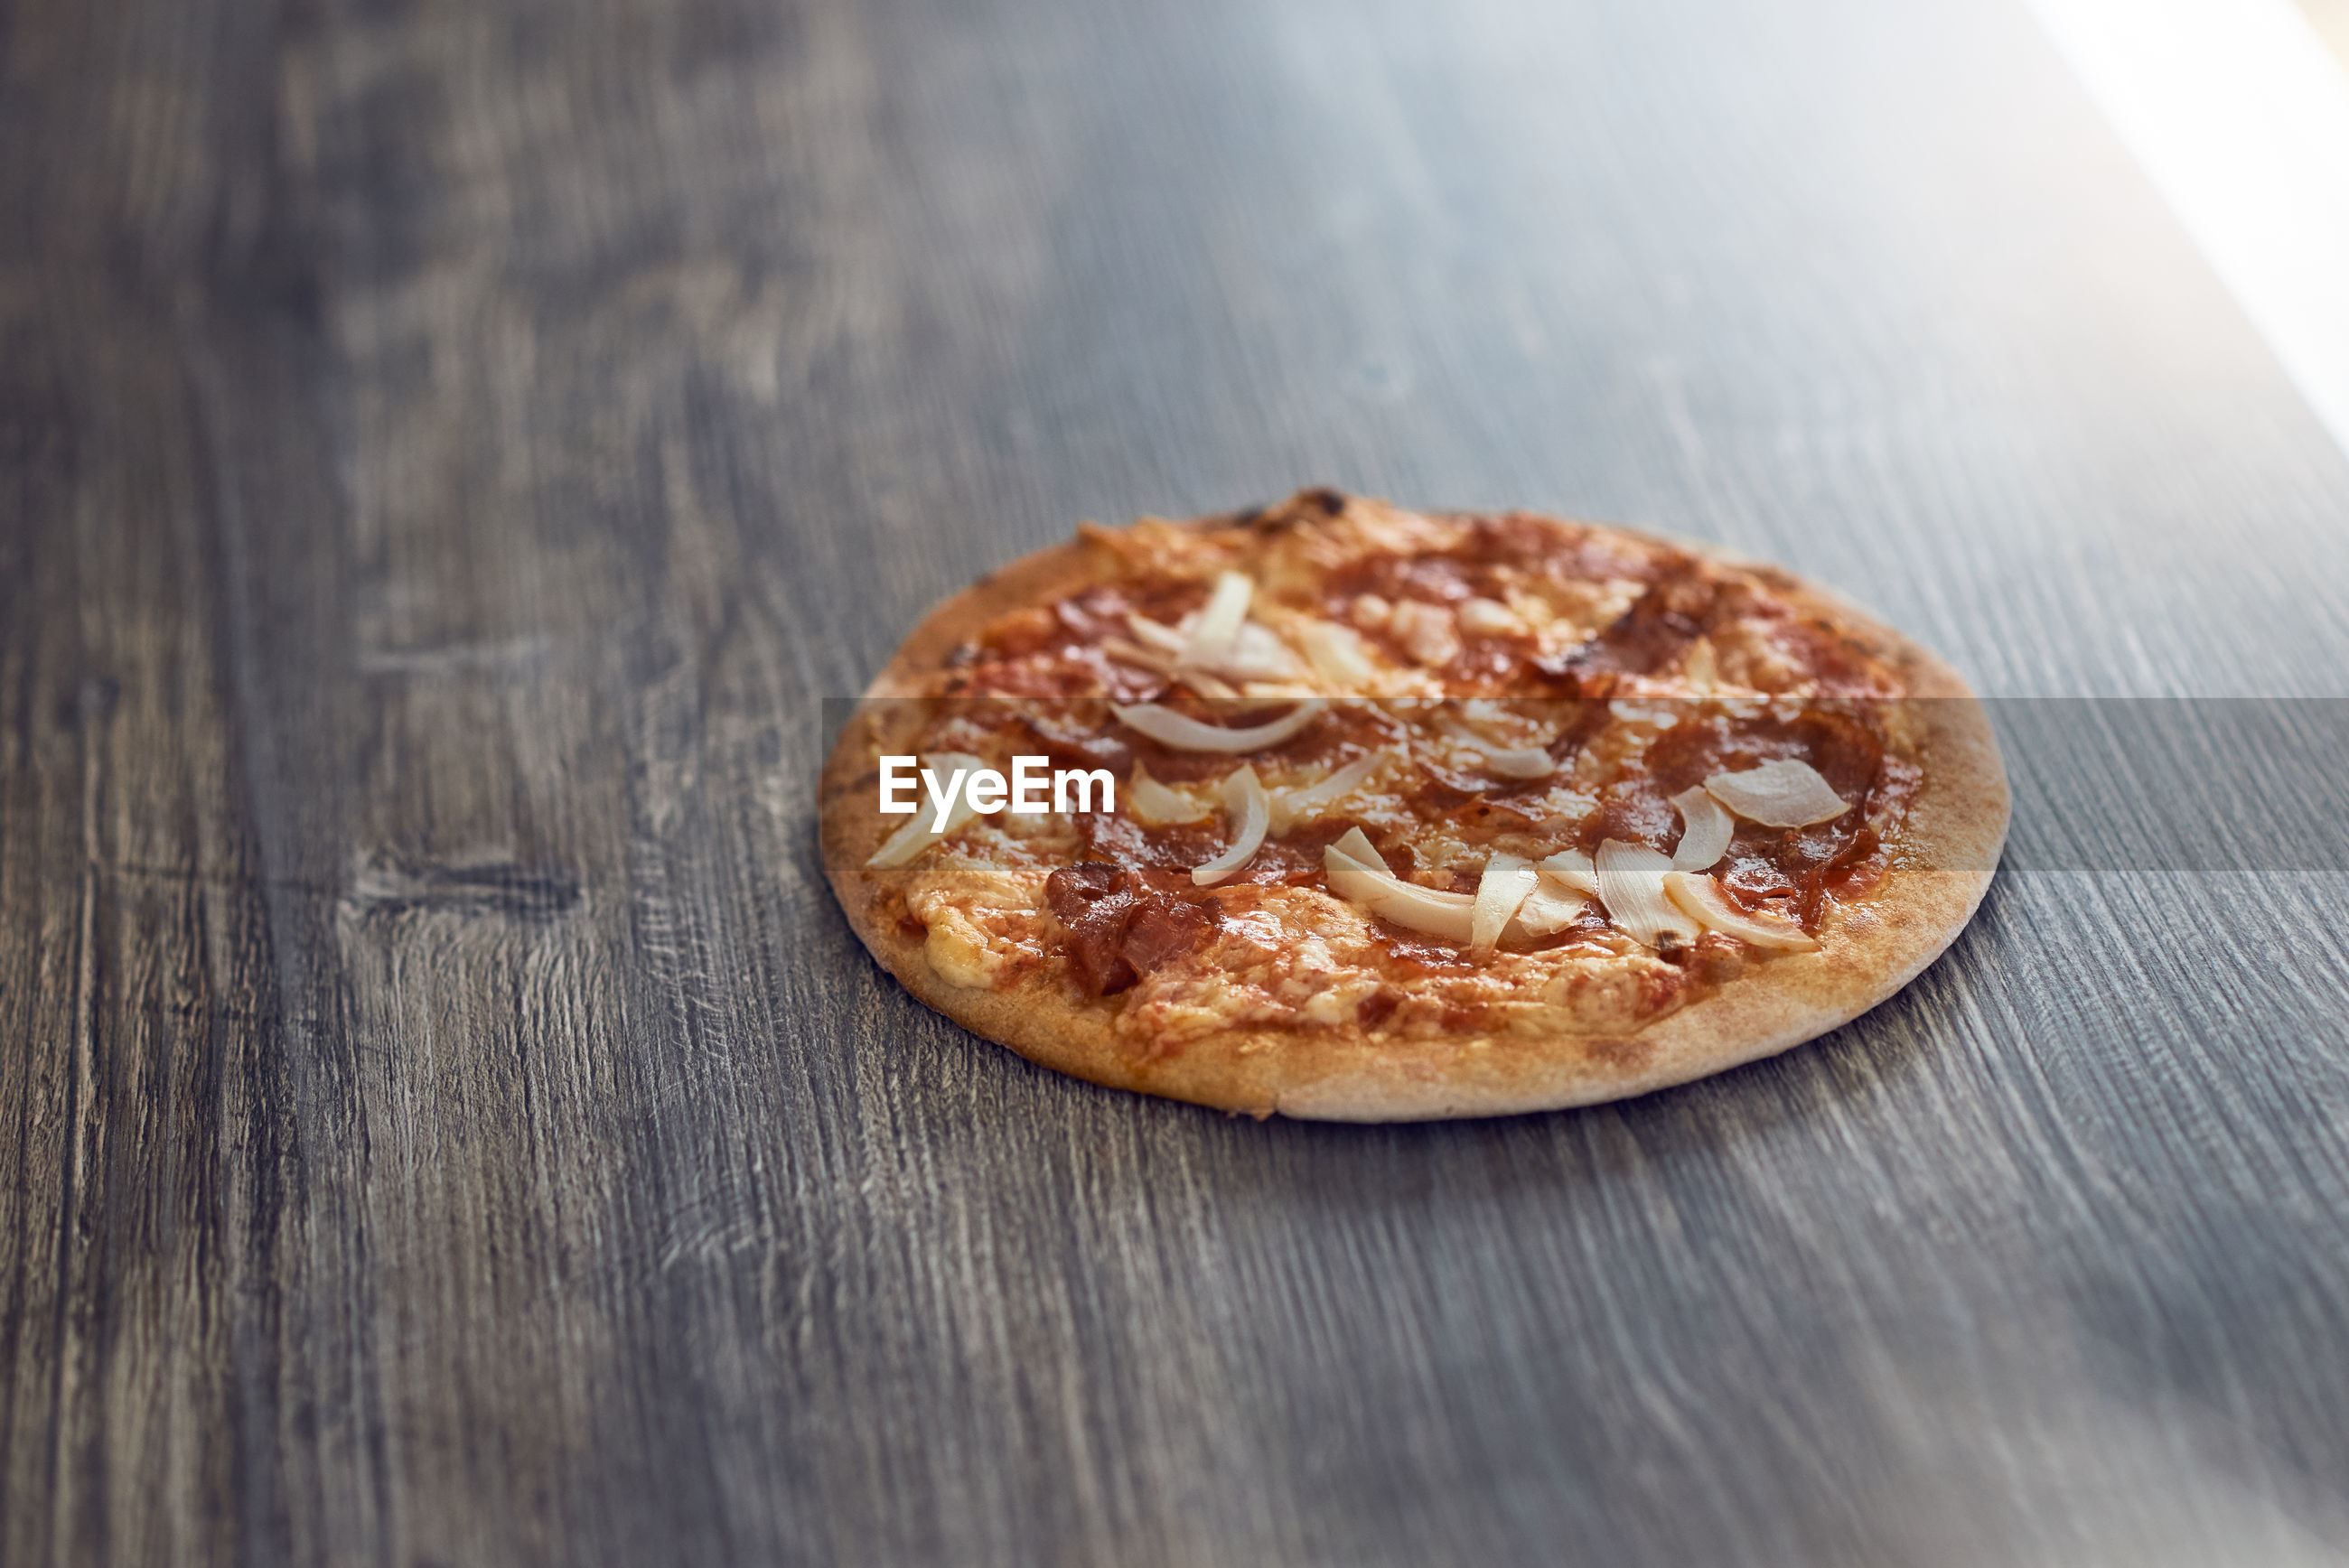 High Angle View Of Grilled Pizza On Wooden Table